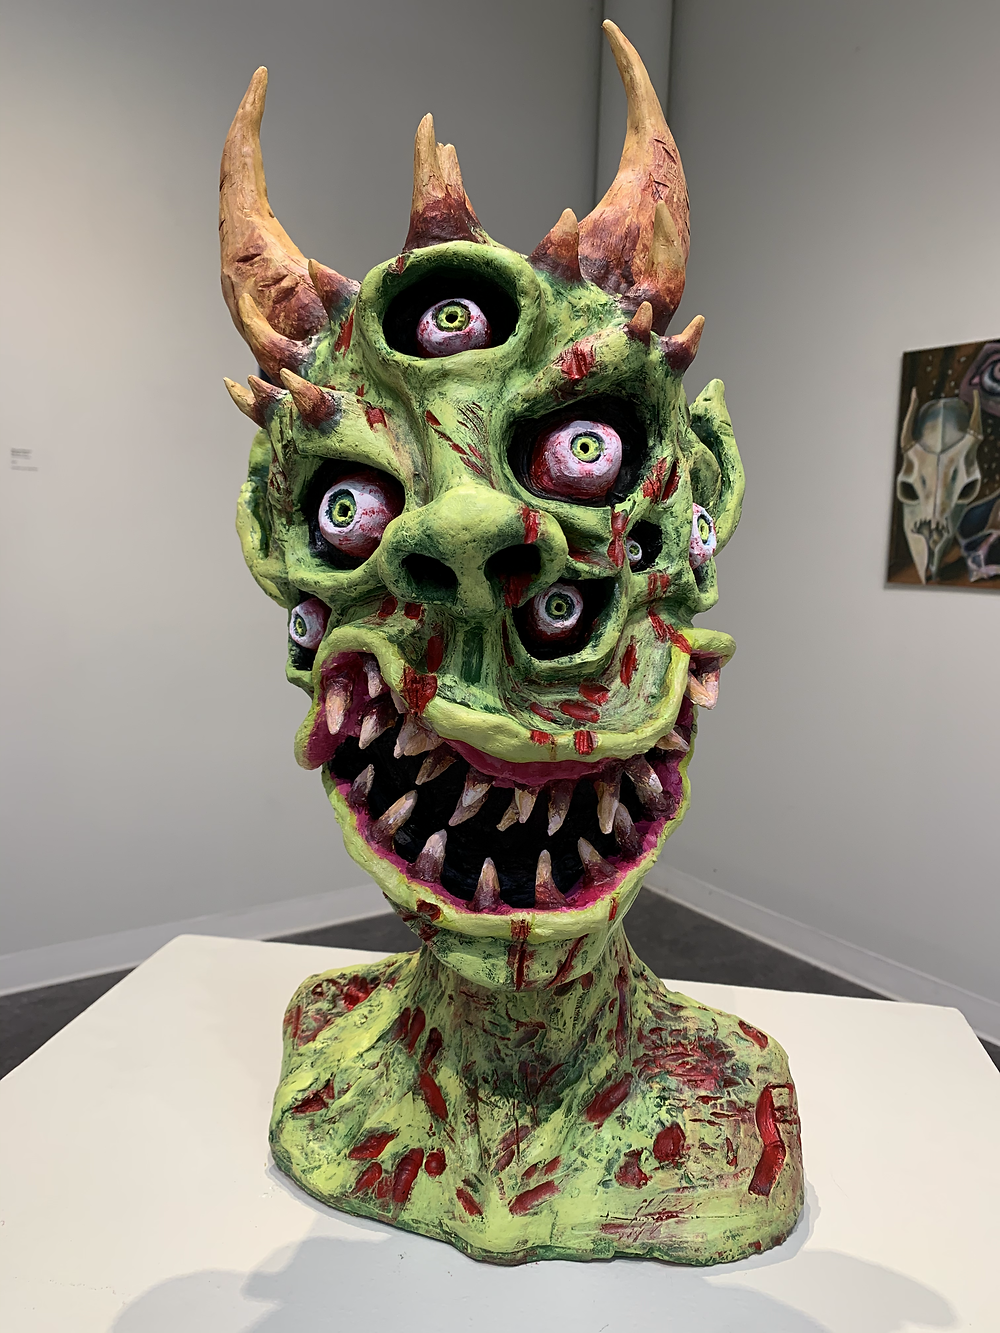 The bust of a green monster with three eyes and horns and many jagged teeth, and cuts all over his body